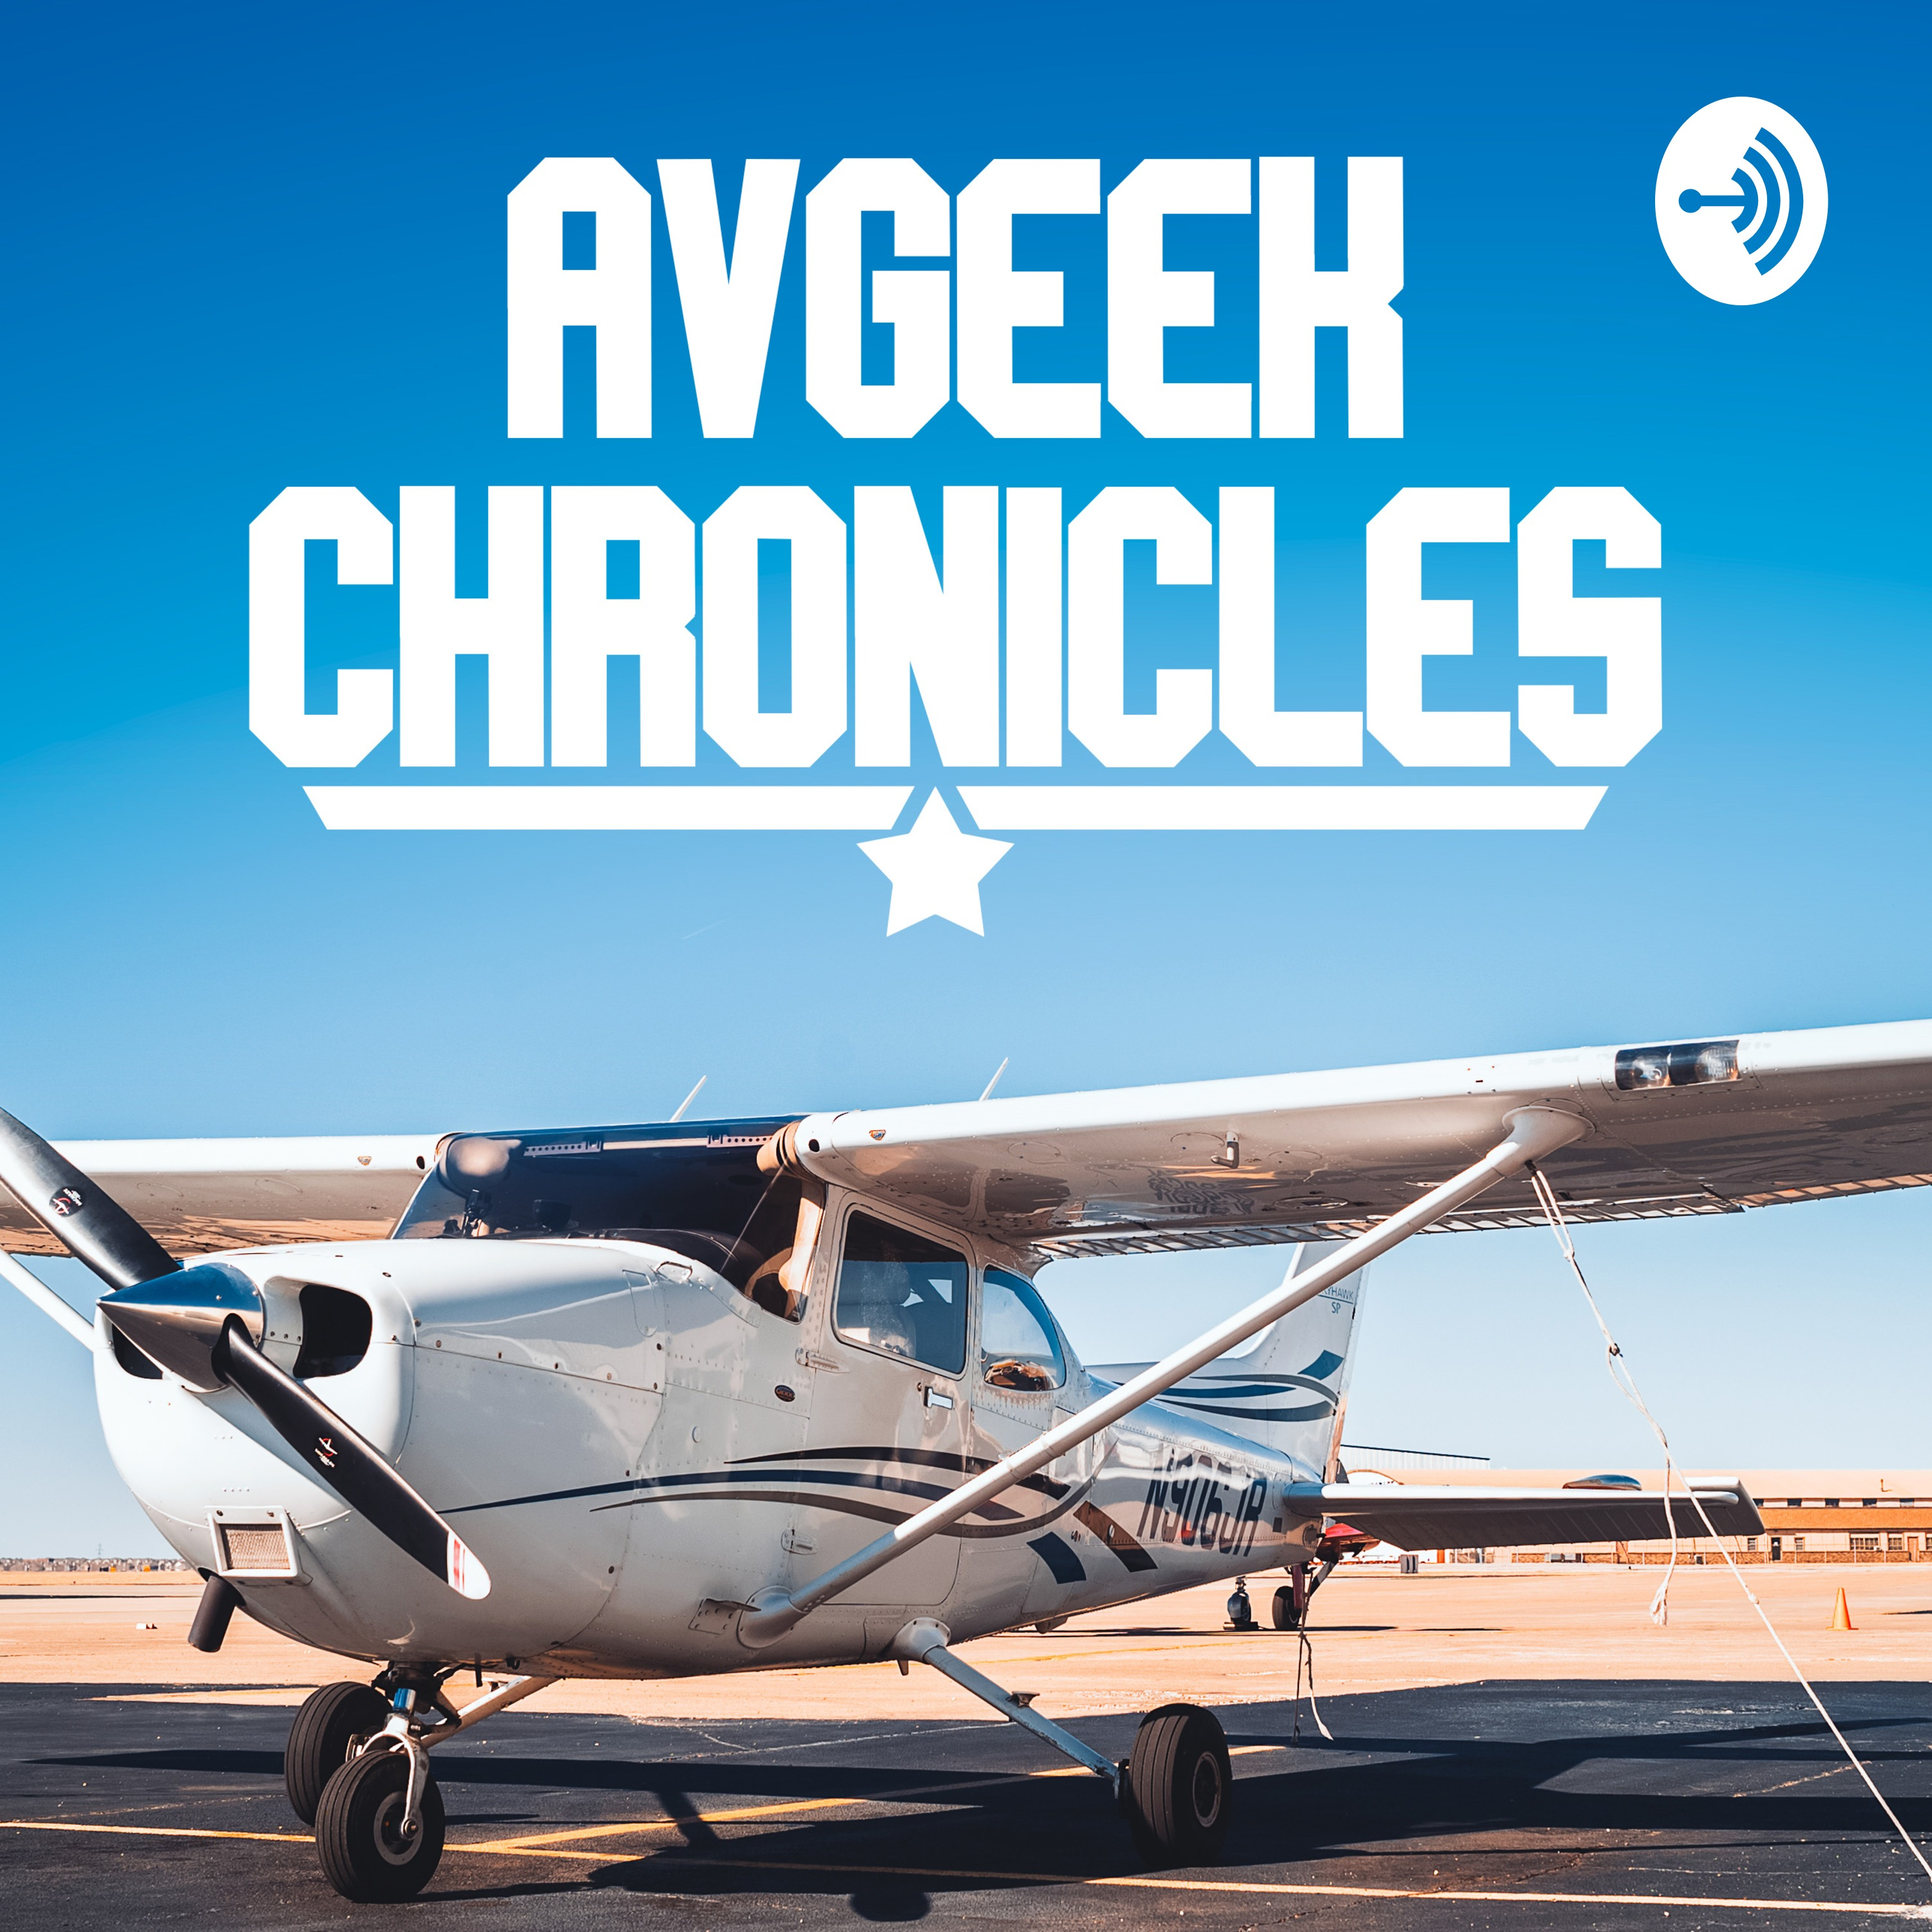 Ep. 041: #AskTheAvGeek 019 with Jerome Stanislaus and Fly For The Culture